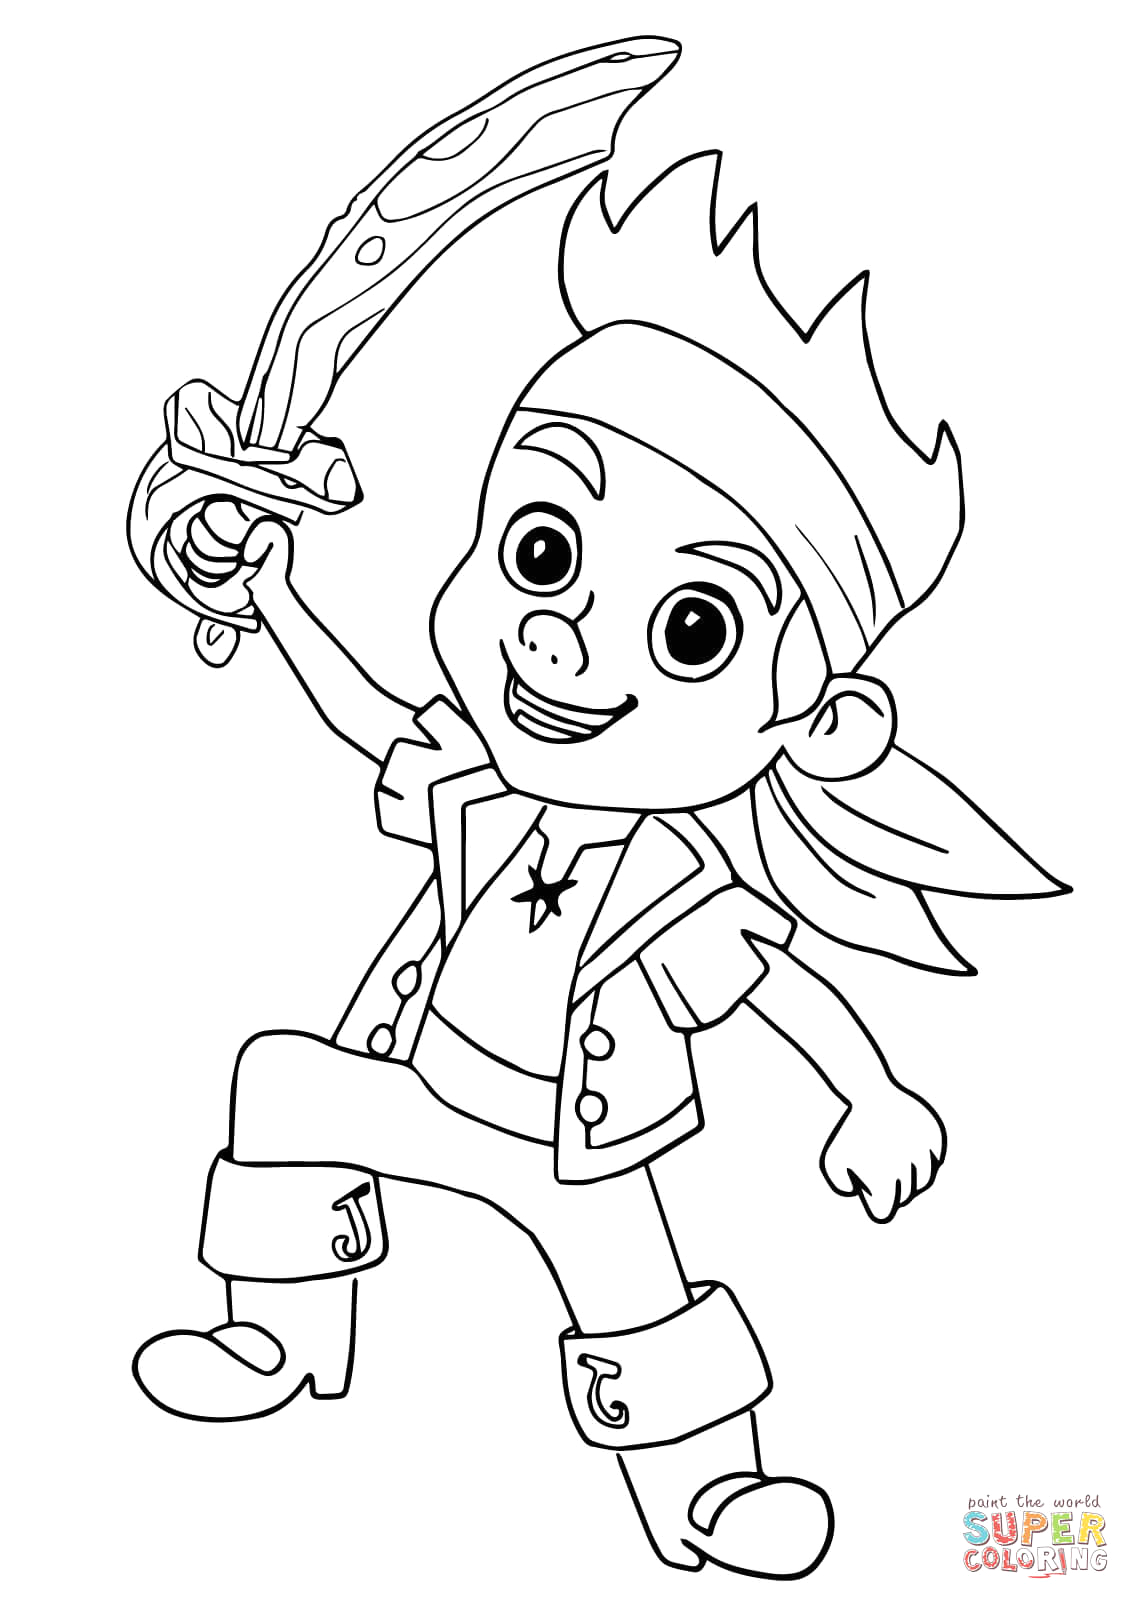 captain james hook jake and the neverland pirates coloring pages sketch templates